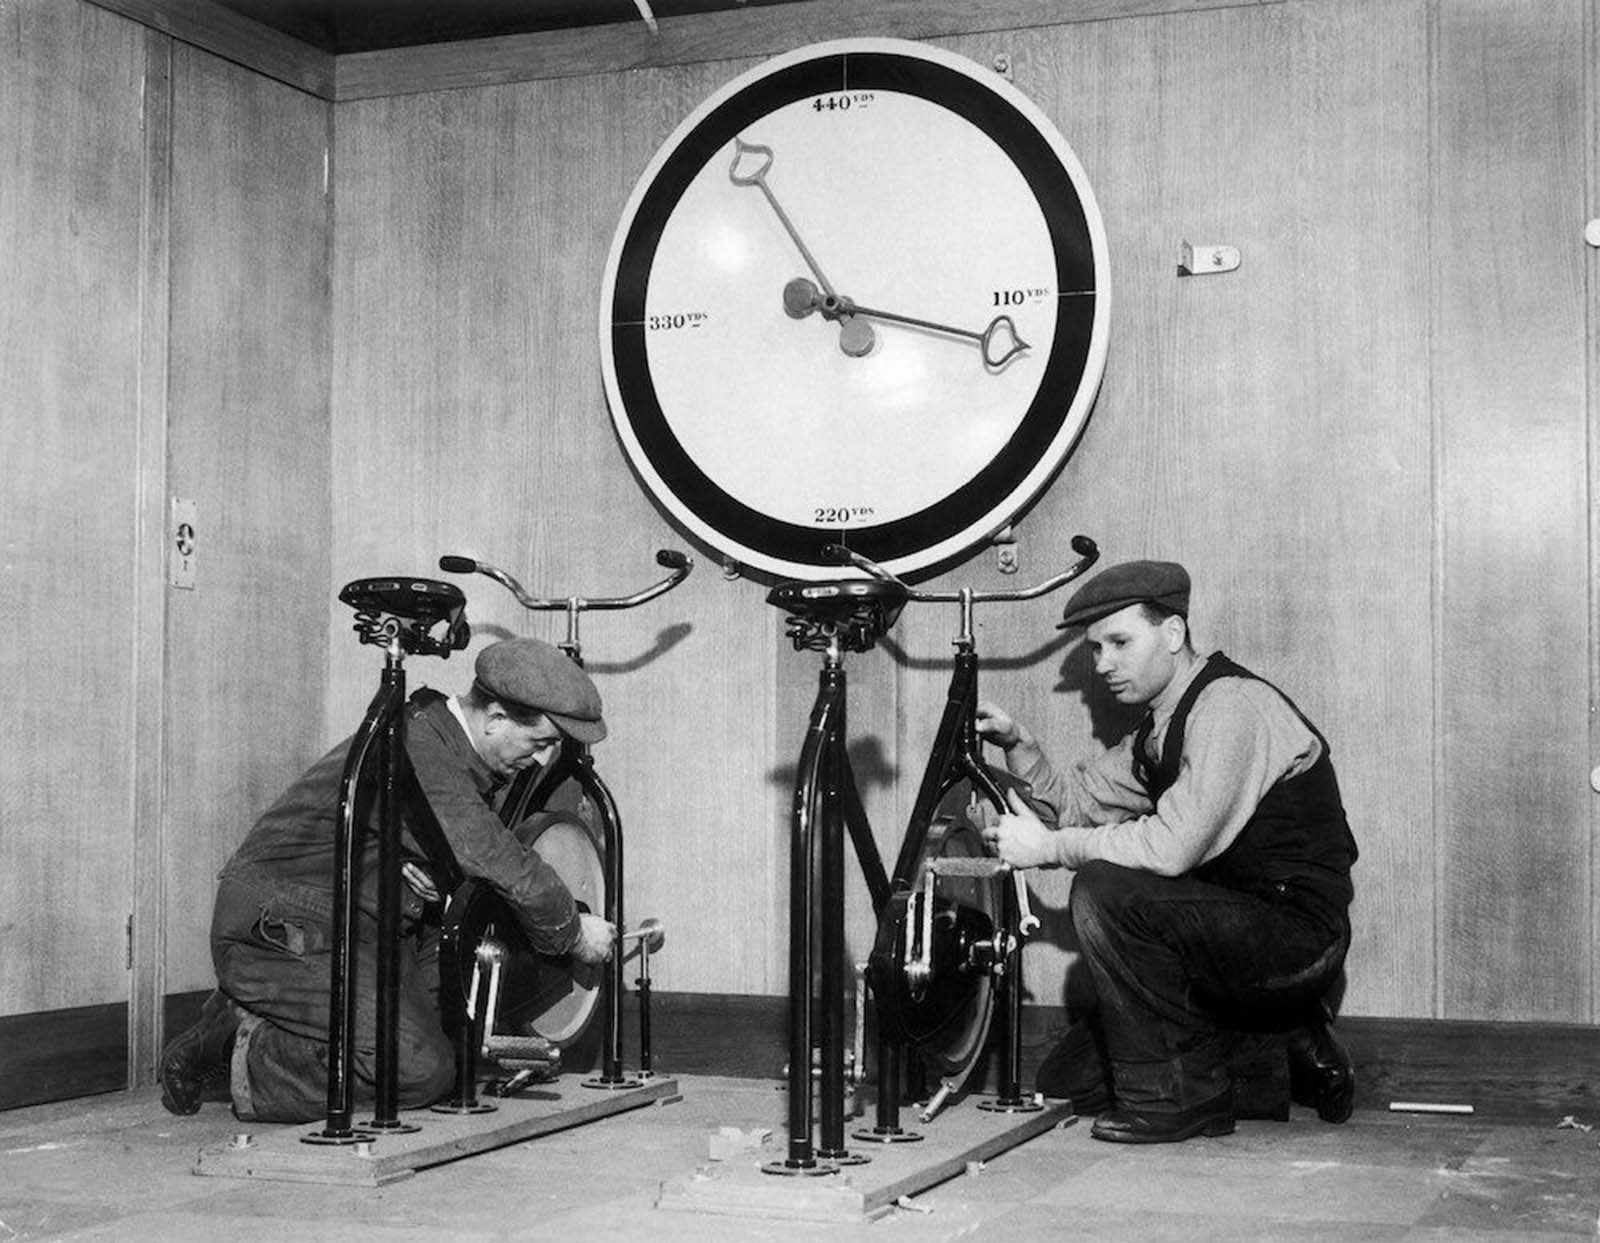 At the time of the installation of the English liner Queen Mary, workmen in the gymnasium of the ship are setting up exercise bikes, with an enormous meter indicating the distance covered. 1932.